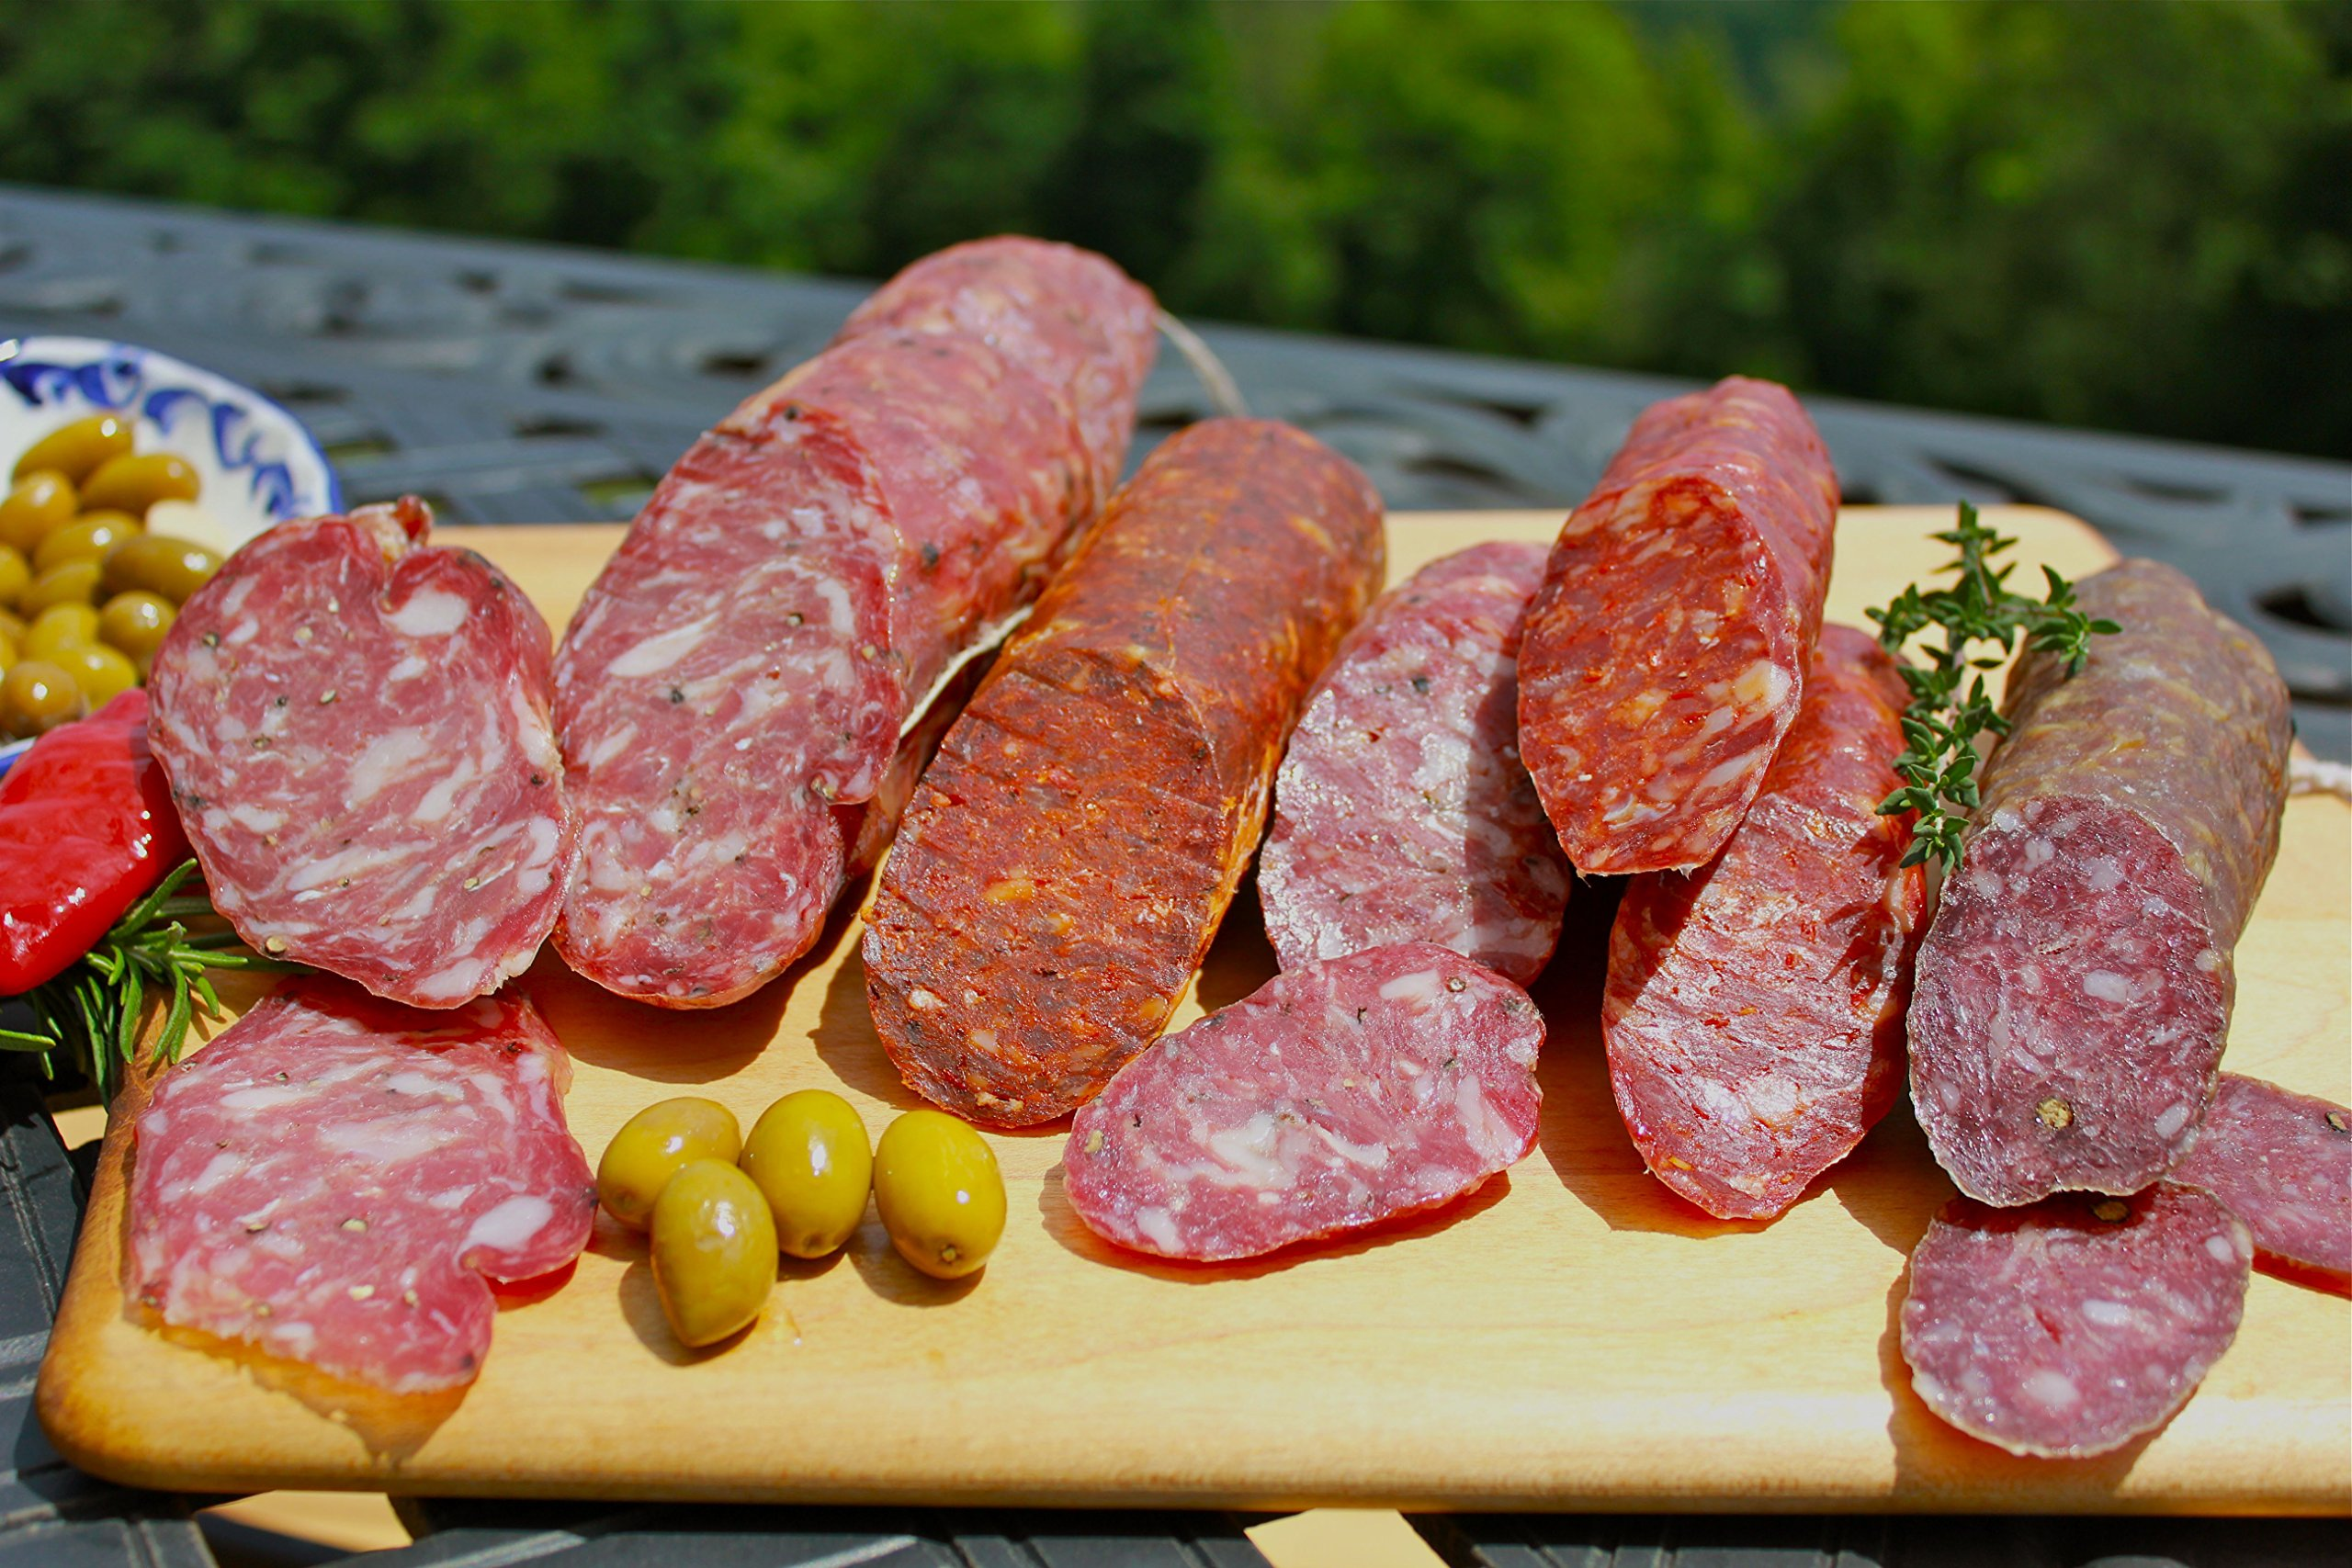 Dry cured Italian Sausage Sampler- 5 sticks 6-14 oz each